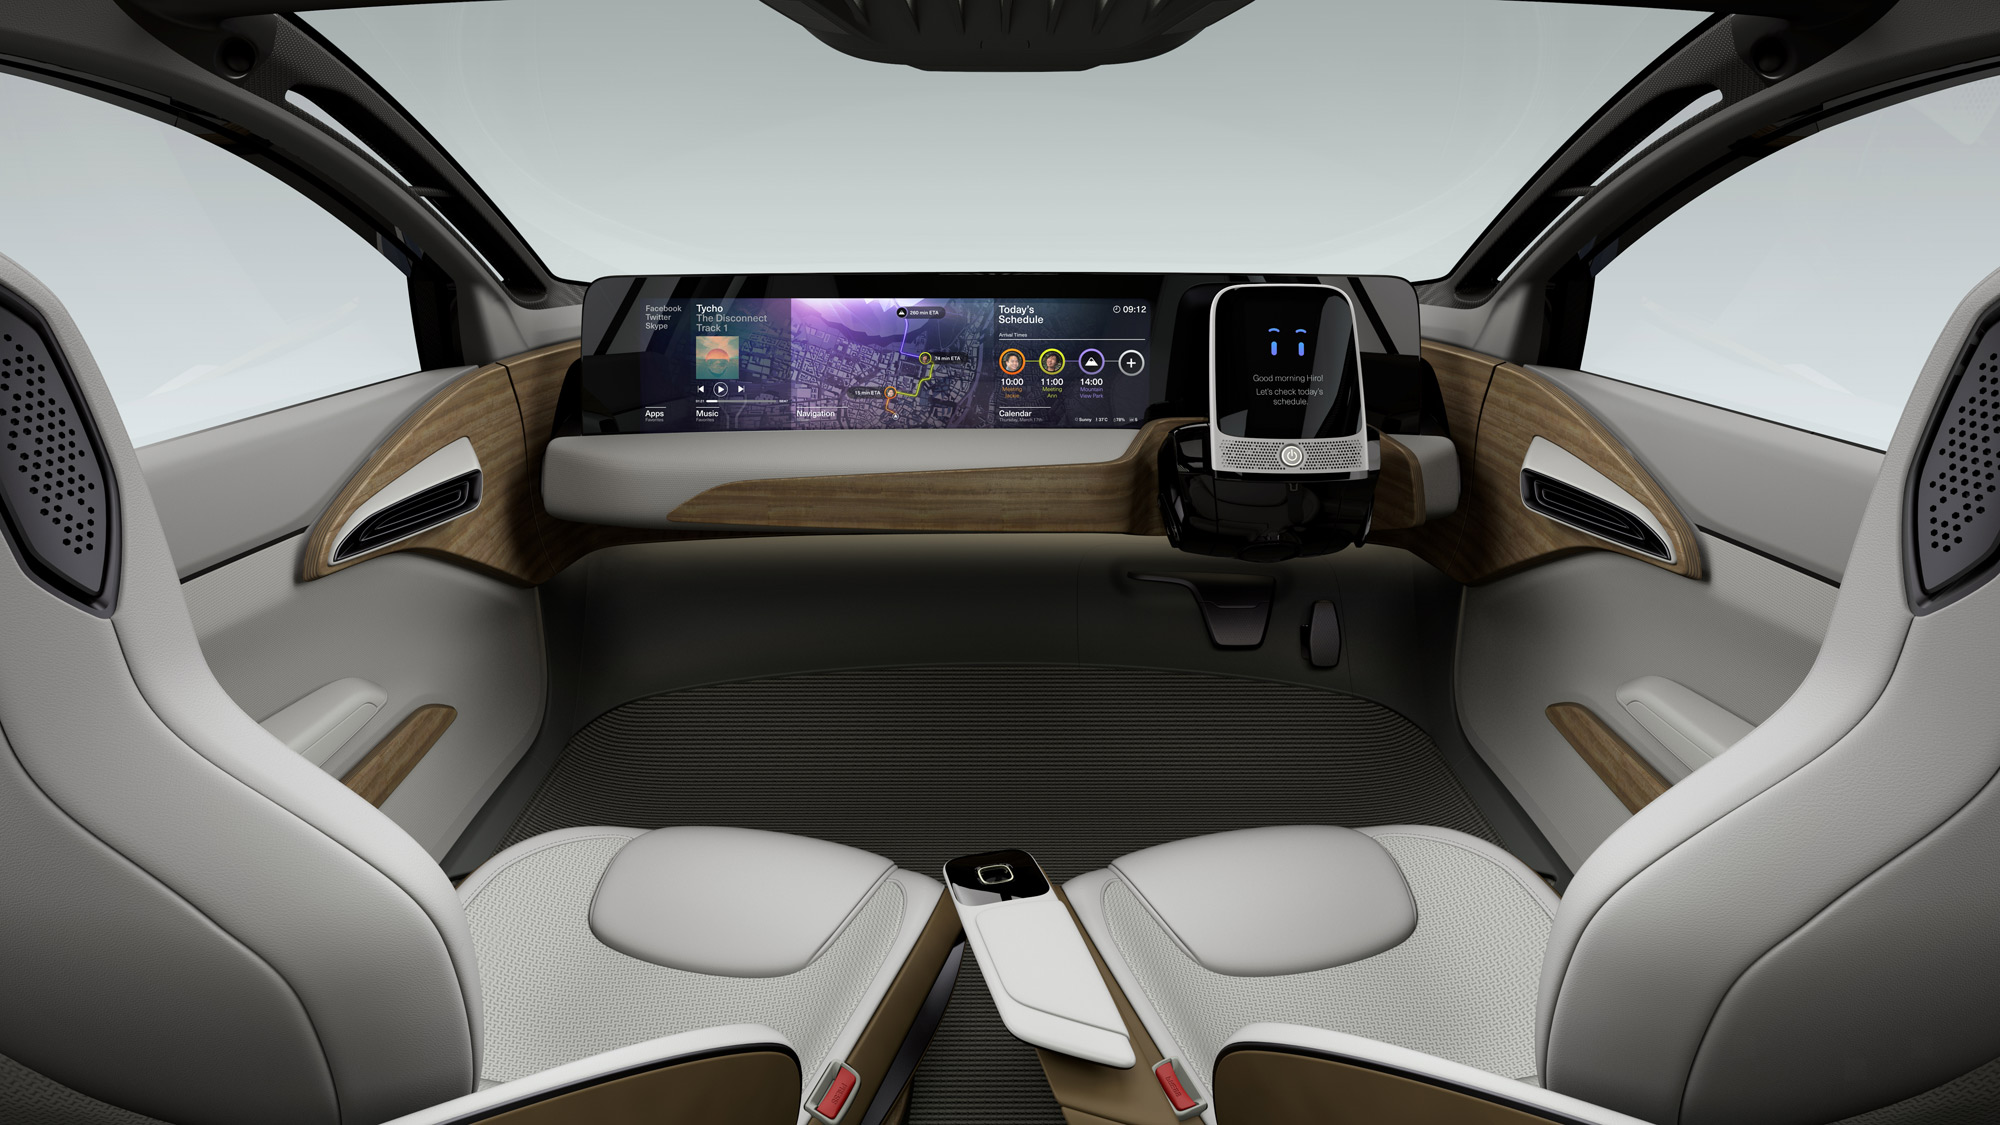 Nissan Leaf autonomous car interior